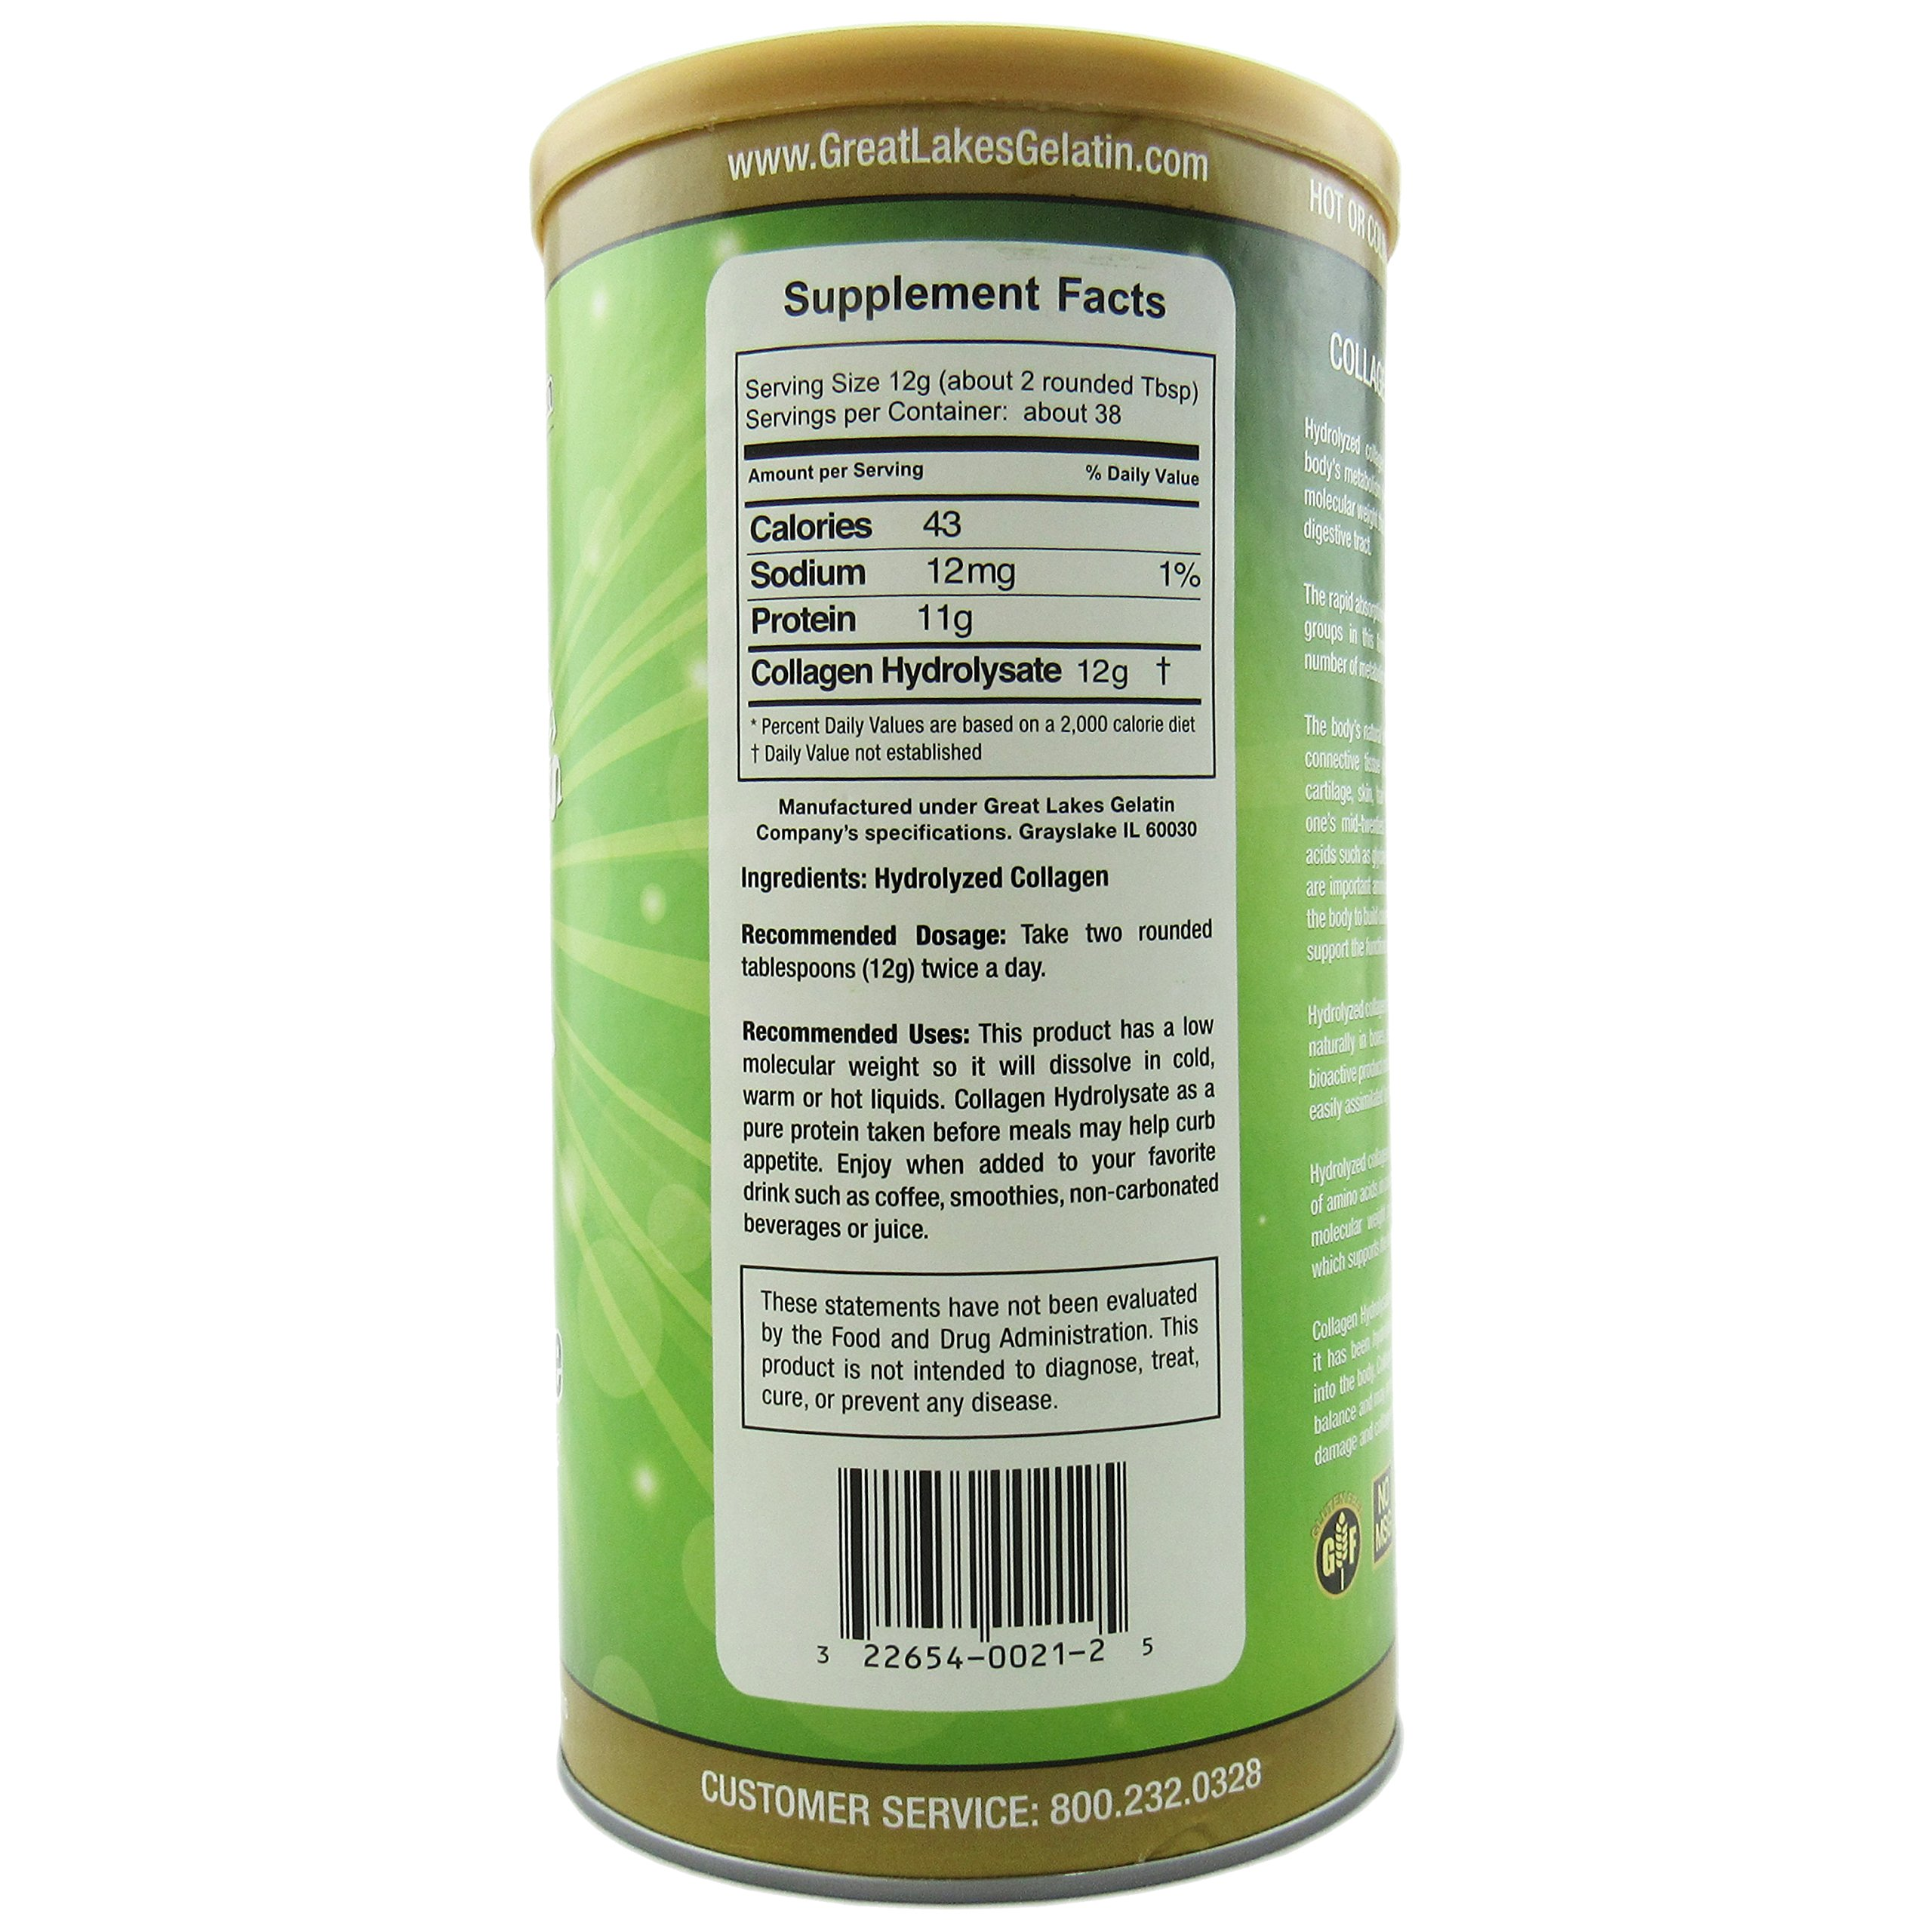 Great Lakes Gelatin Co., Collagen Hydrolysate, Bovine, 16 oz (454 g) - 2pcs by Great Lakes (Image #2)